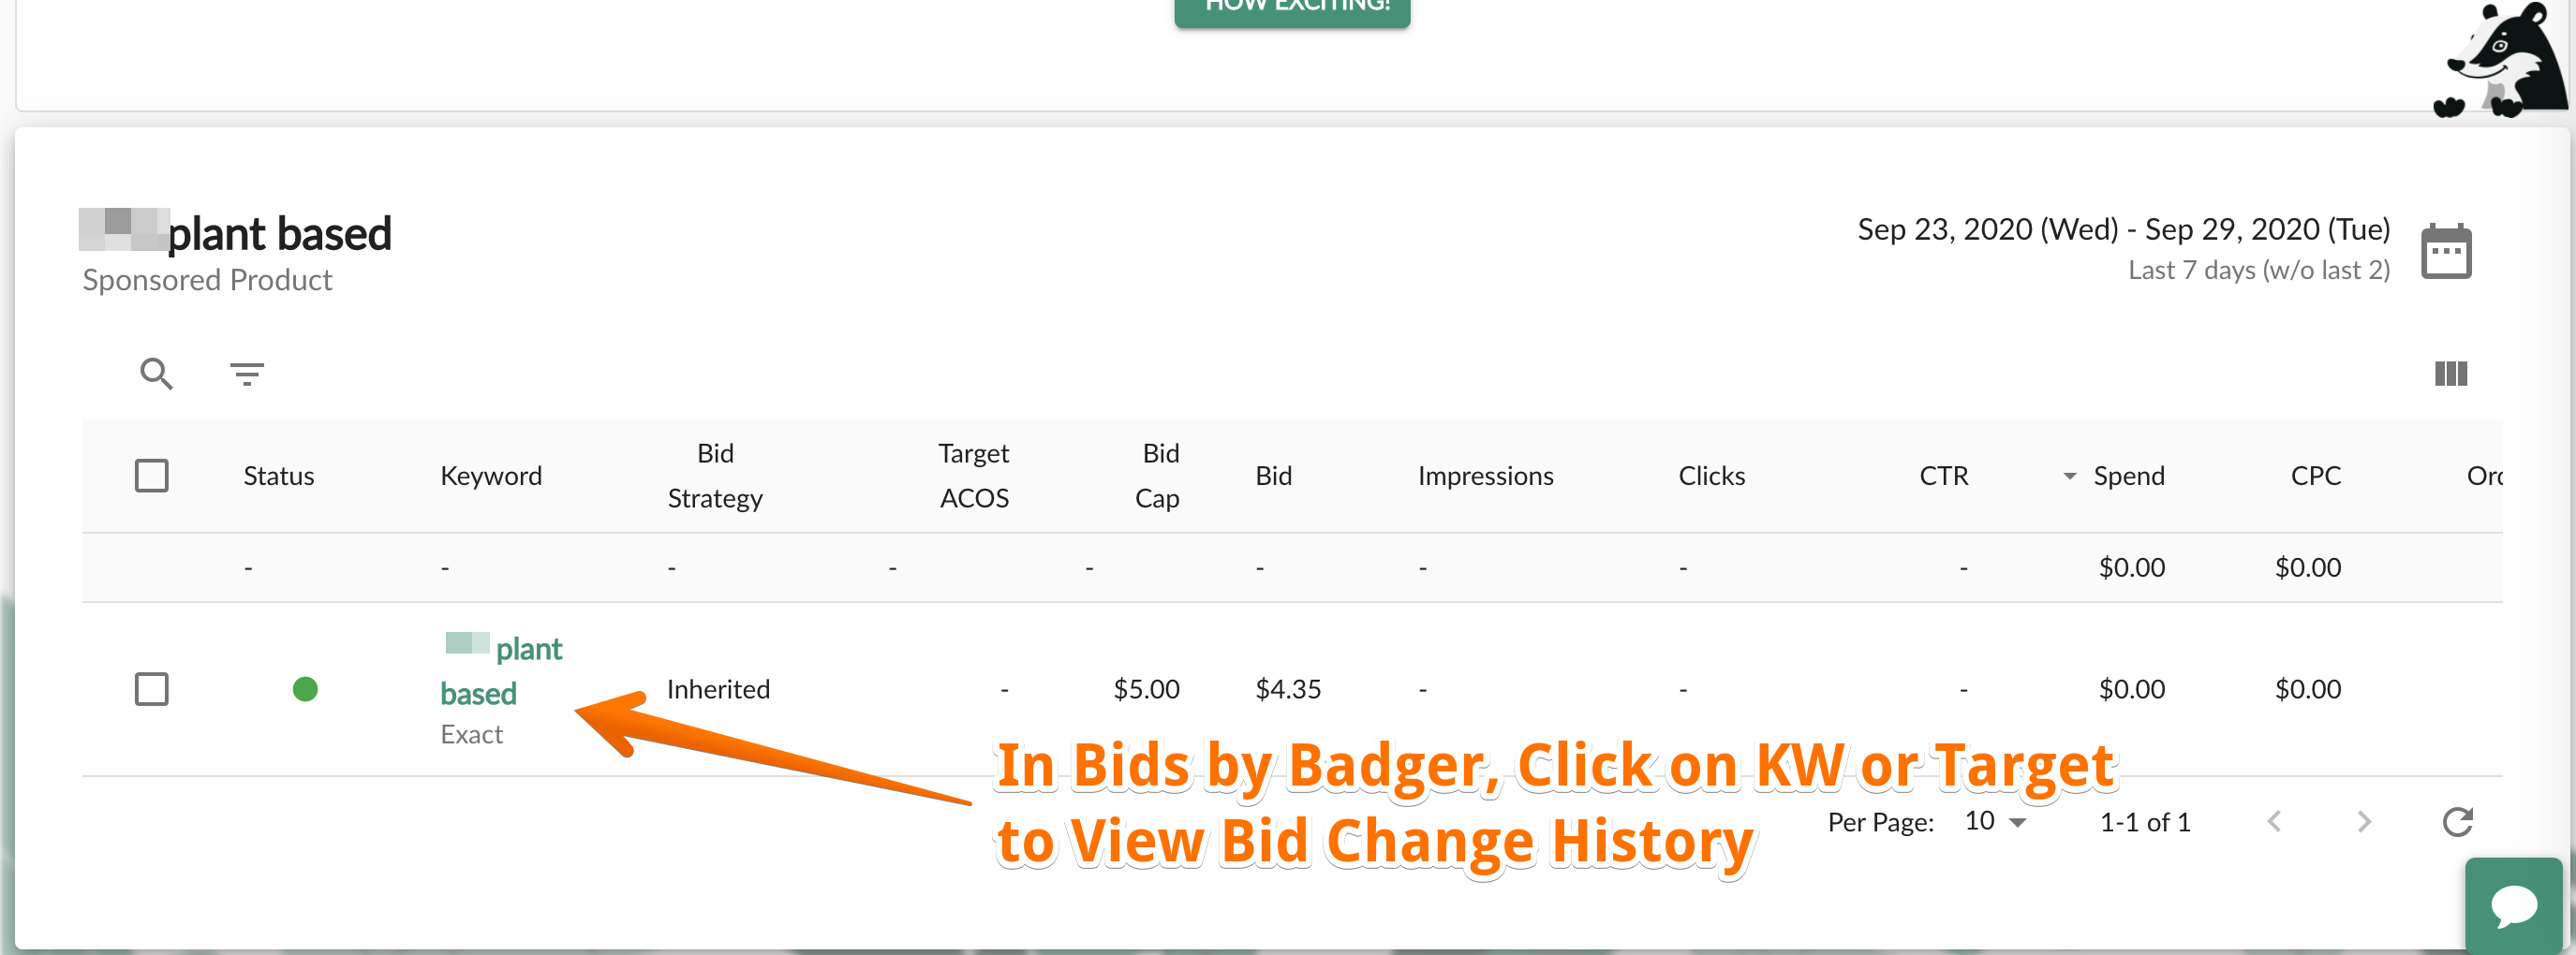 In Bids By Badger, click on keyword or target to view Bid Change History